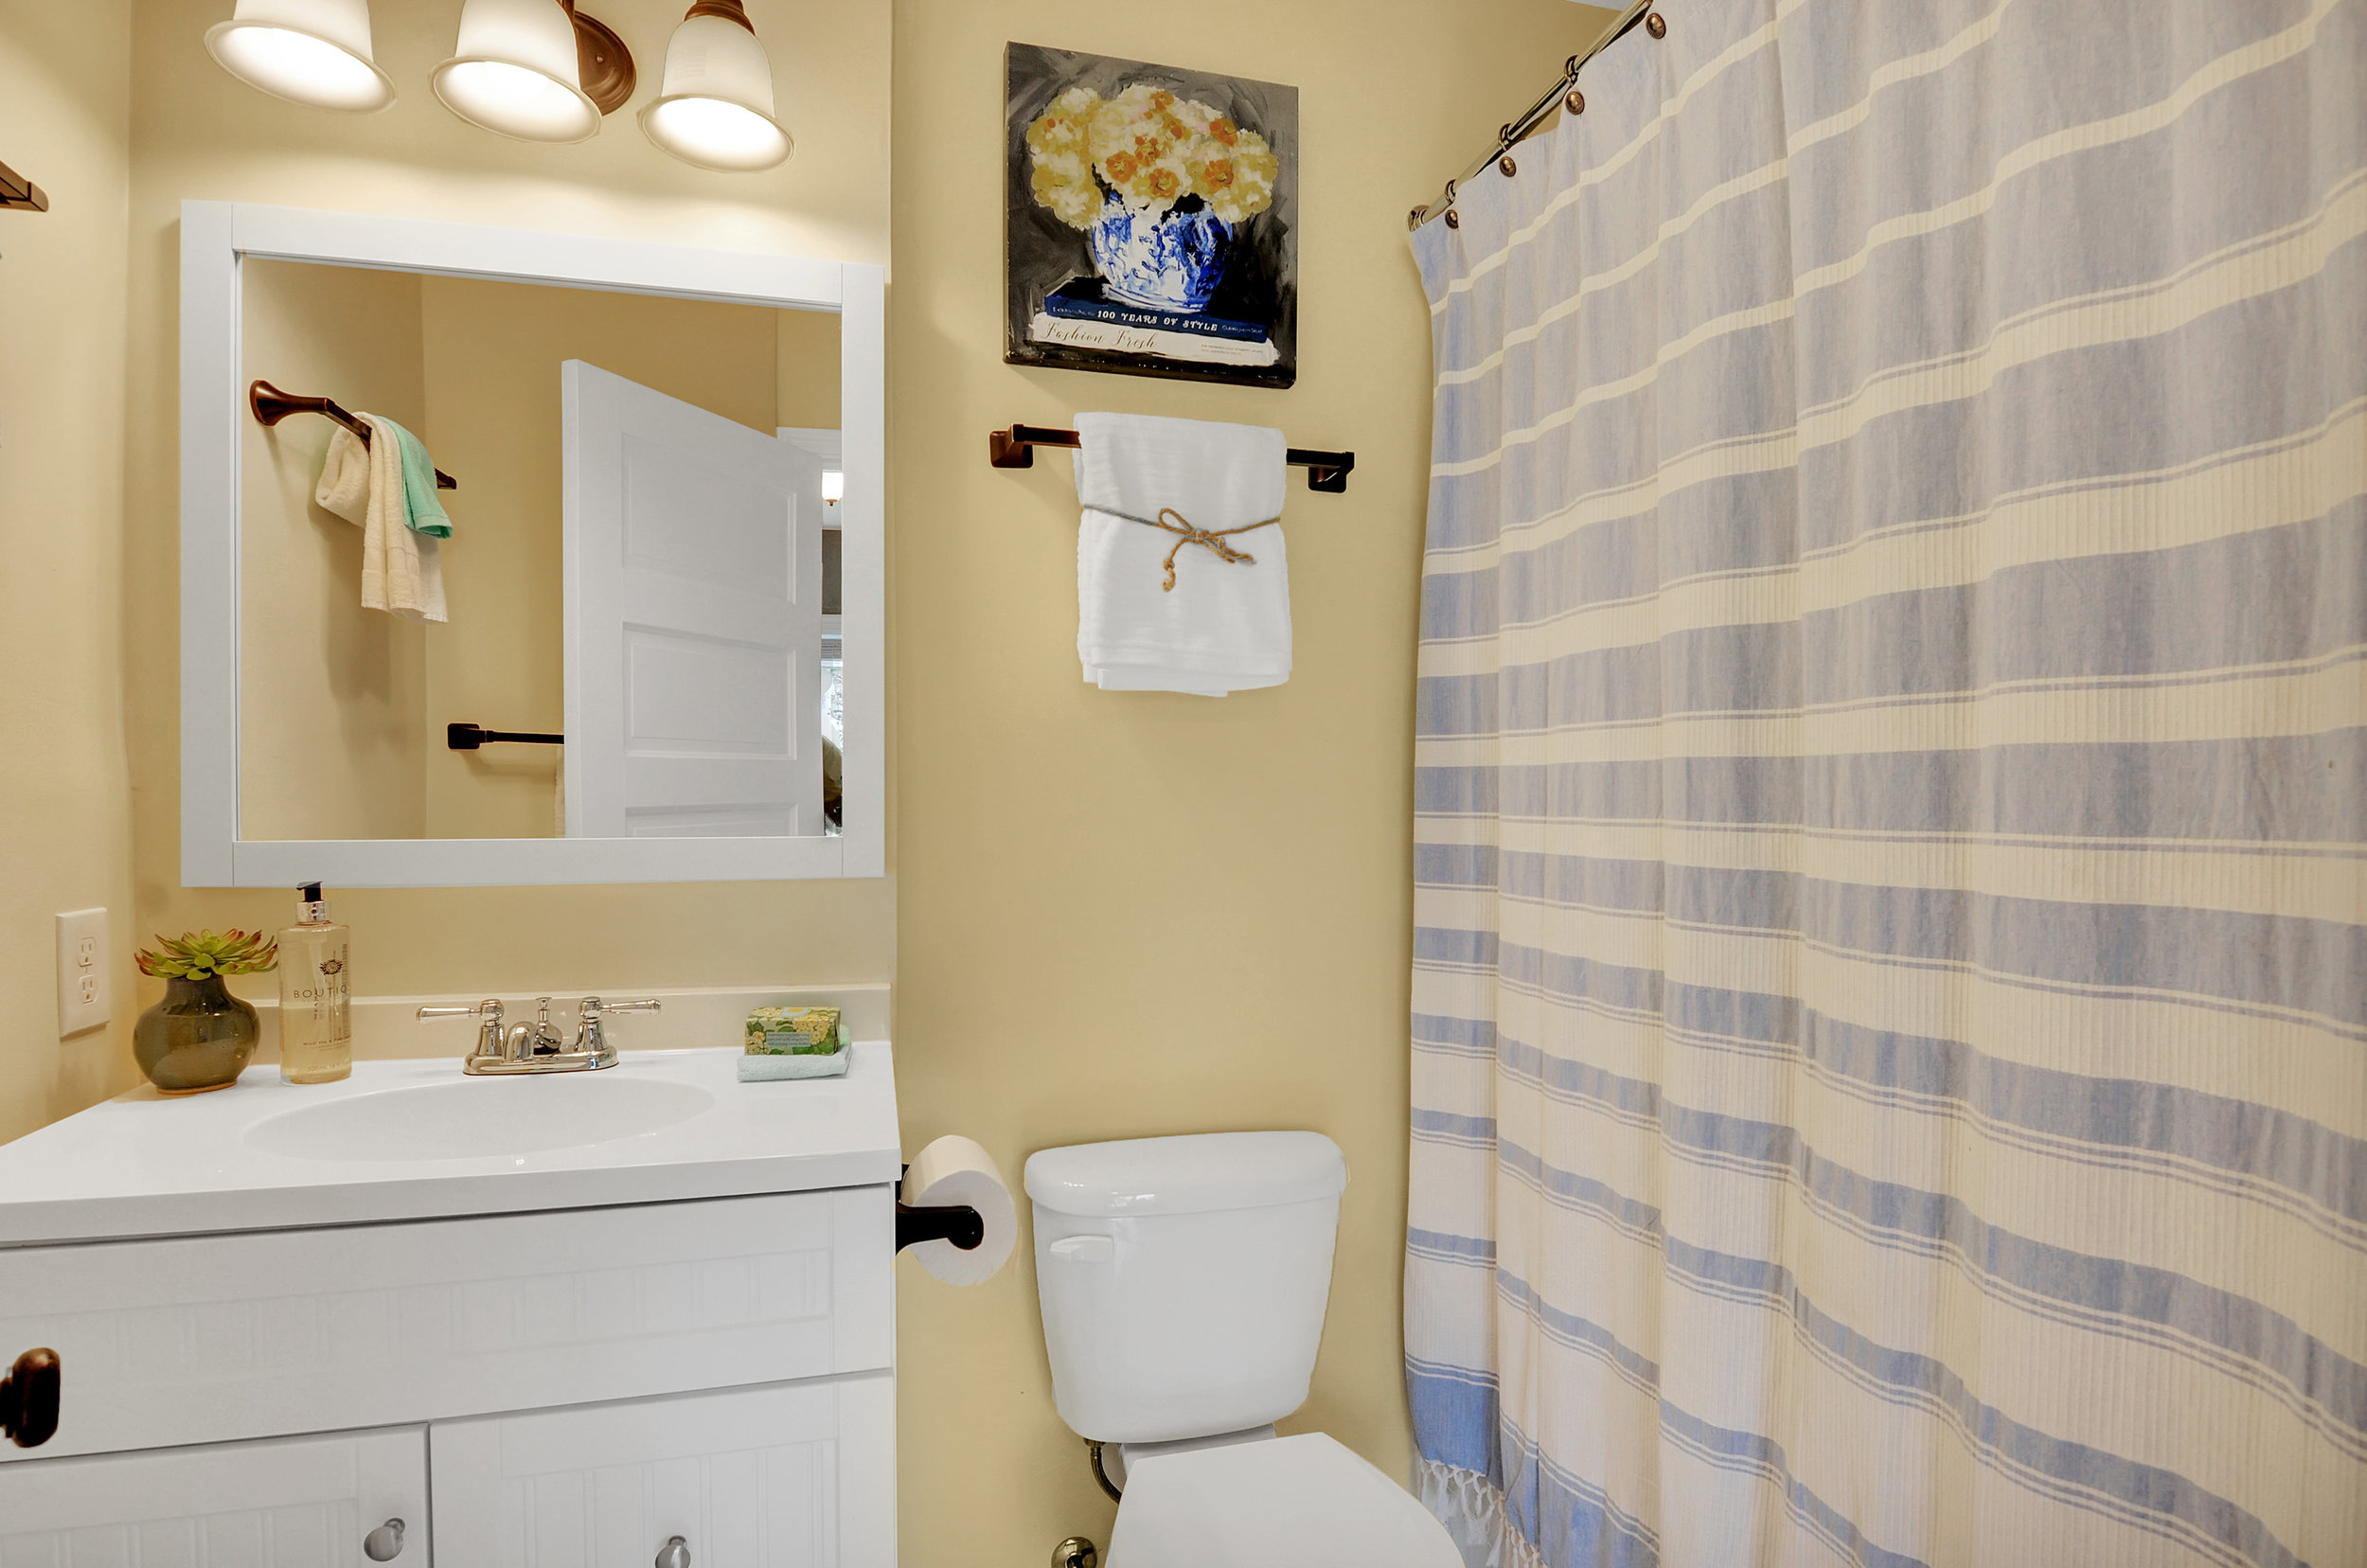 The private full bath has a tile floor, and tile in the shower/tub combo with a classic white vanity and mirror.